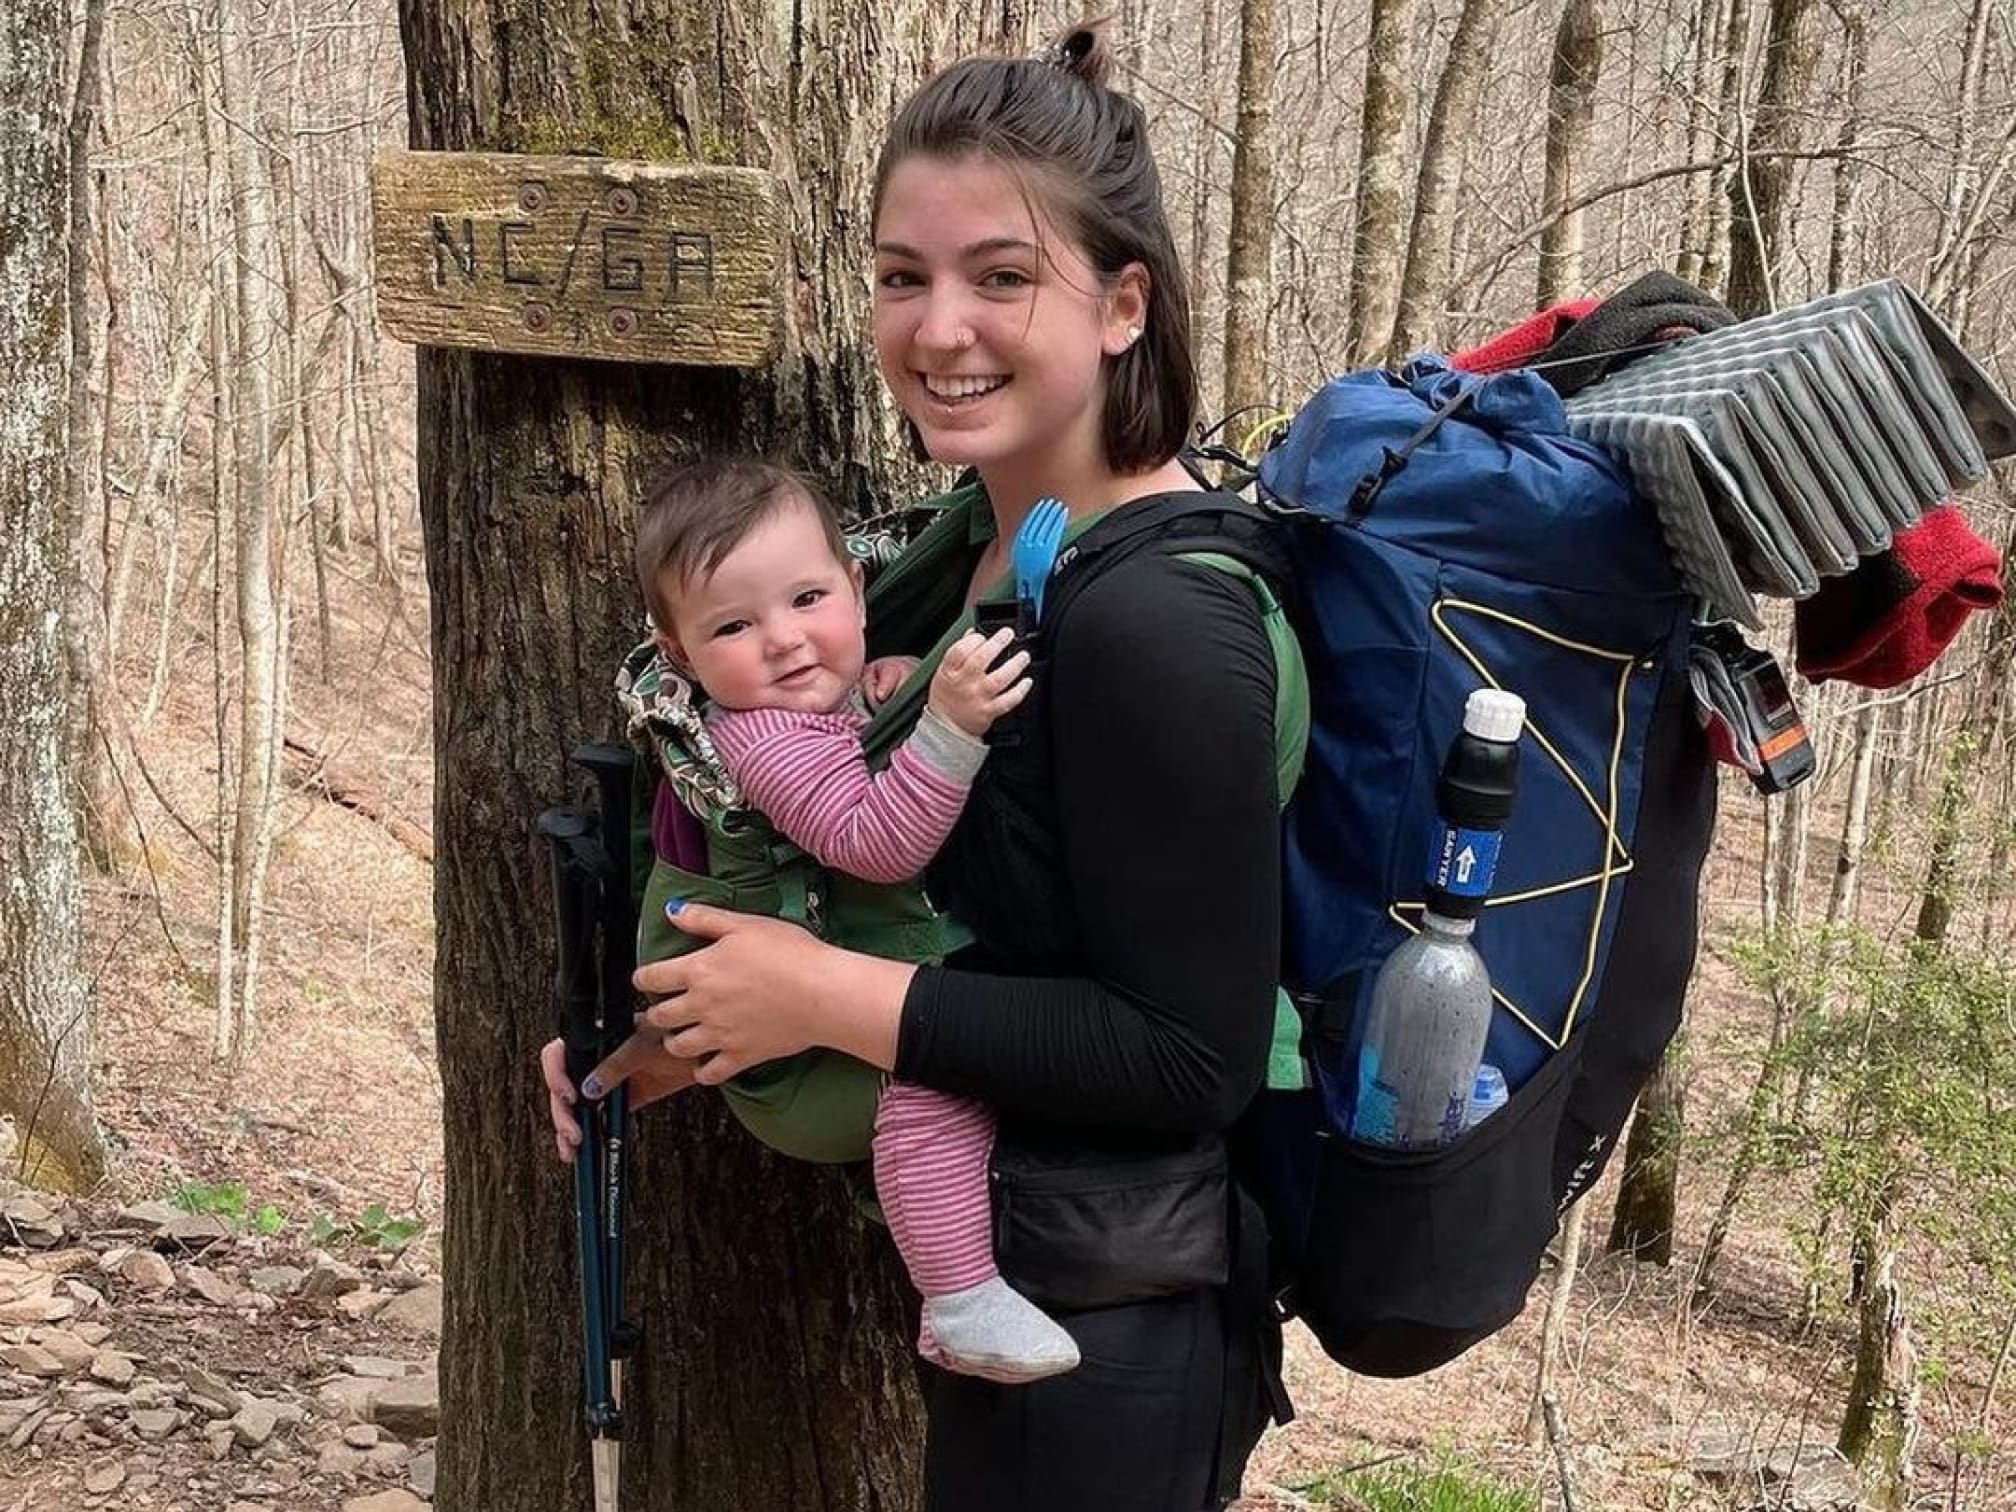 Instagram image showing a mom hiking with her baby strapped to her.